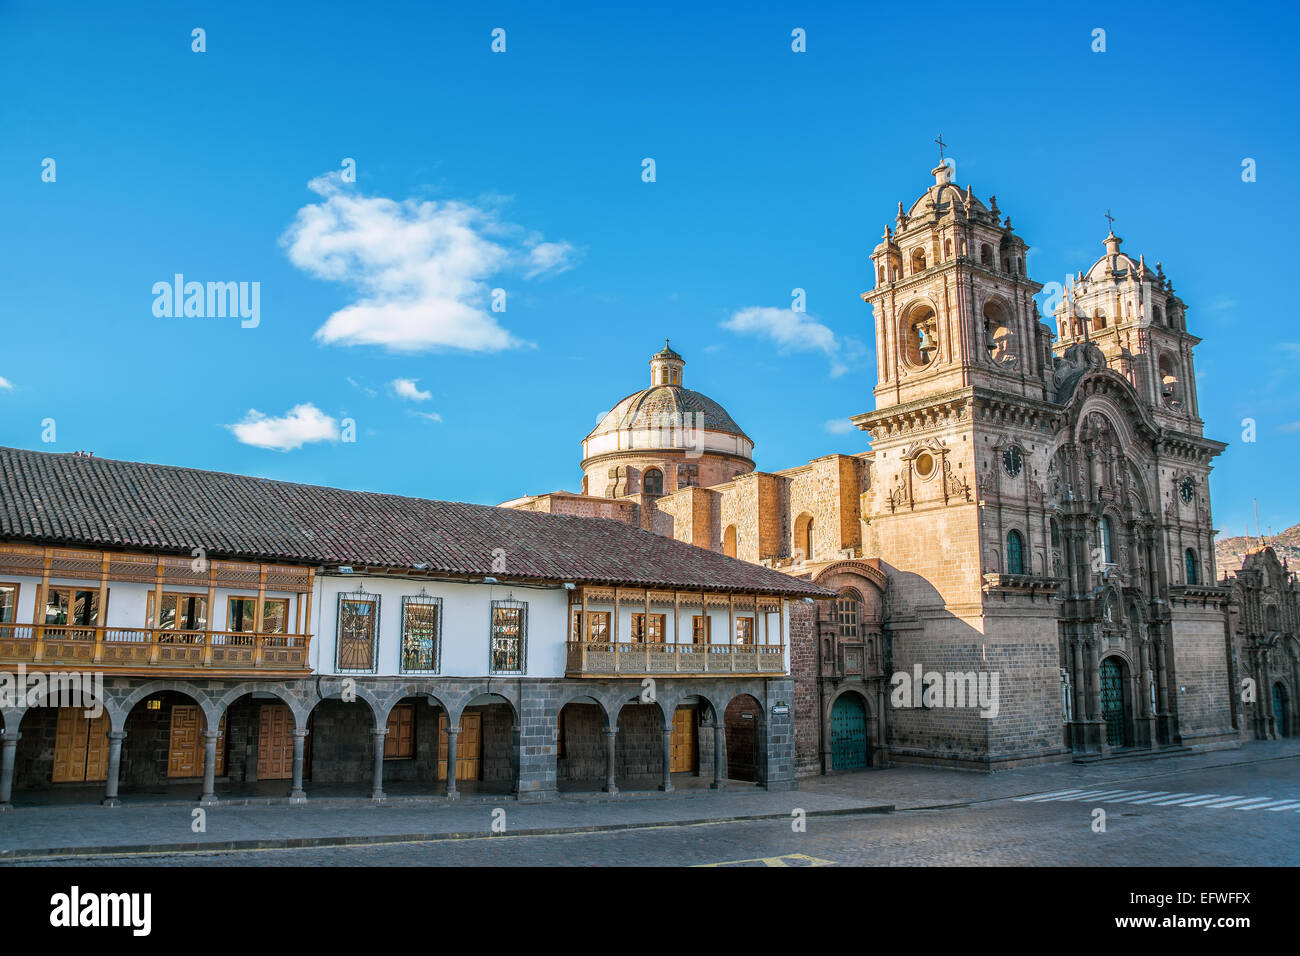 Colonial architecture and stunning church on the Plaza de Armas in Cuzco, Peru - Stock Image